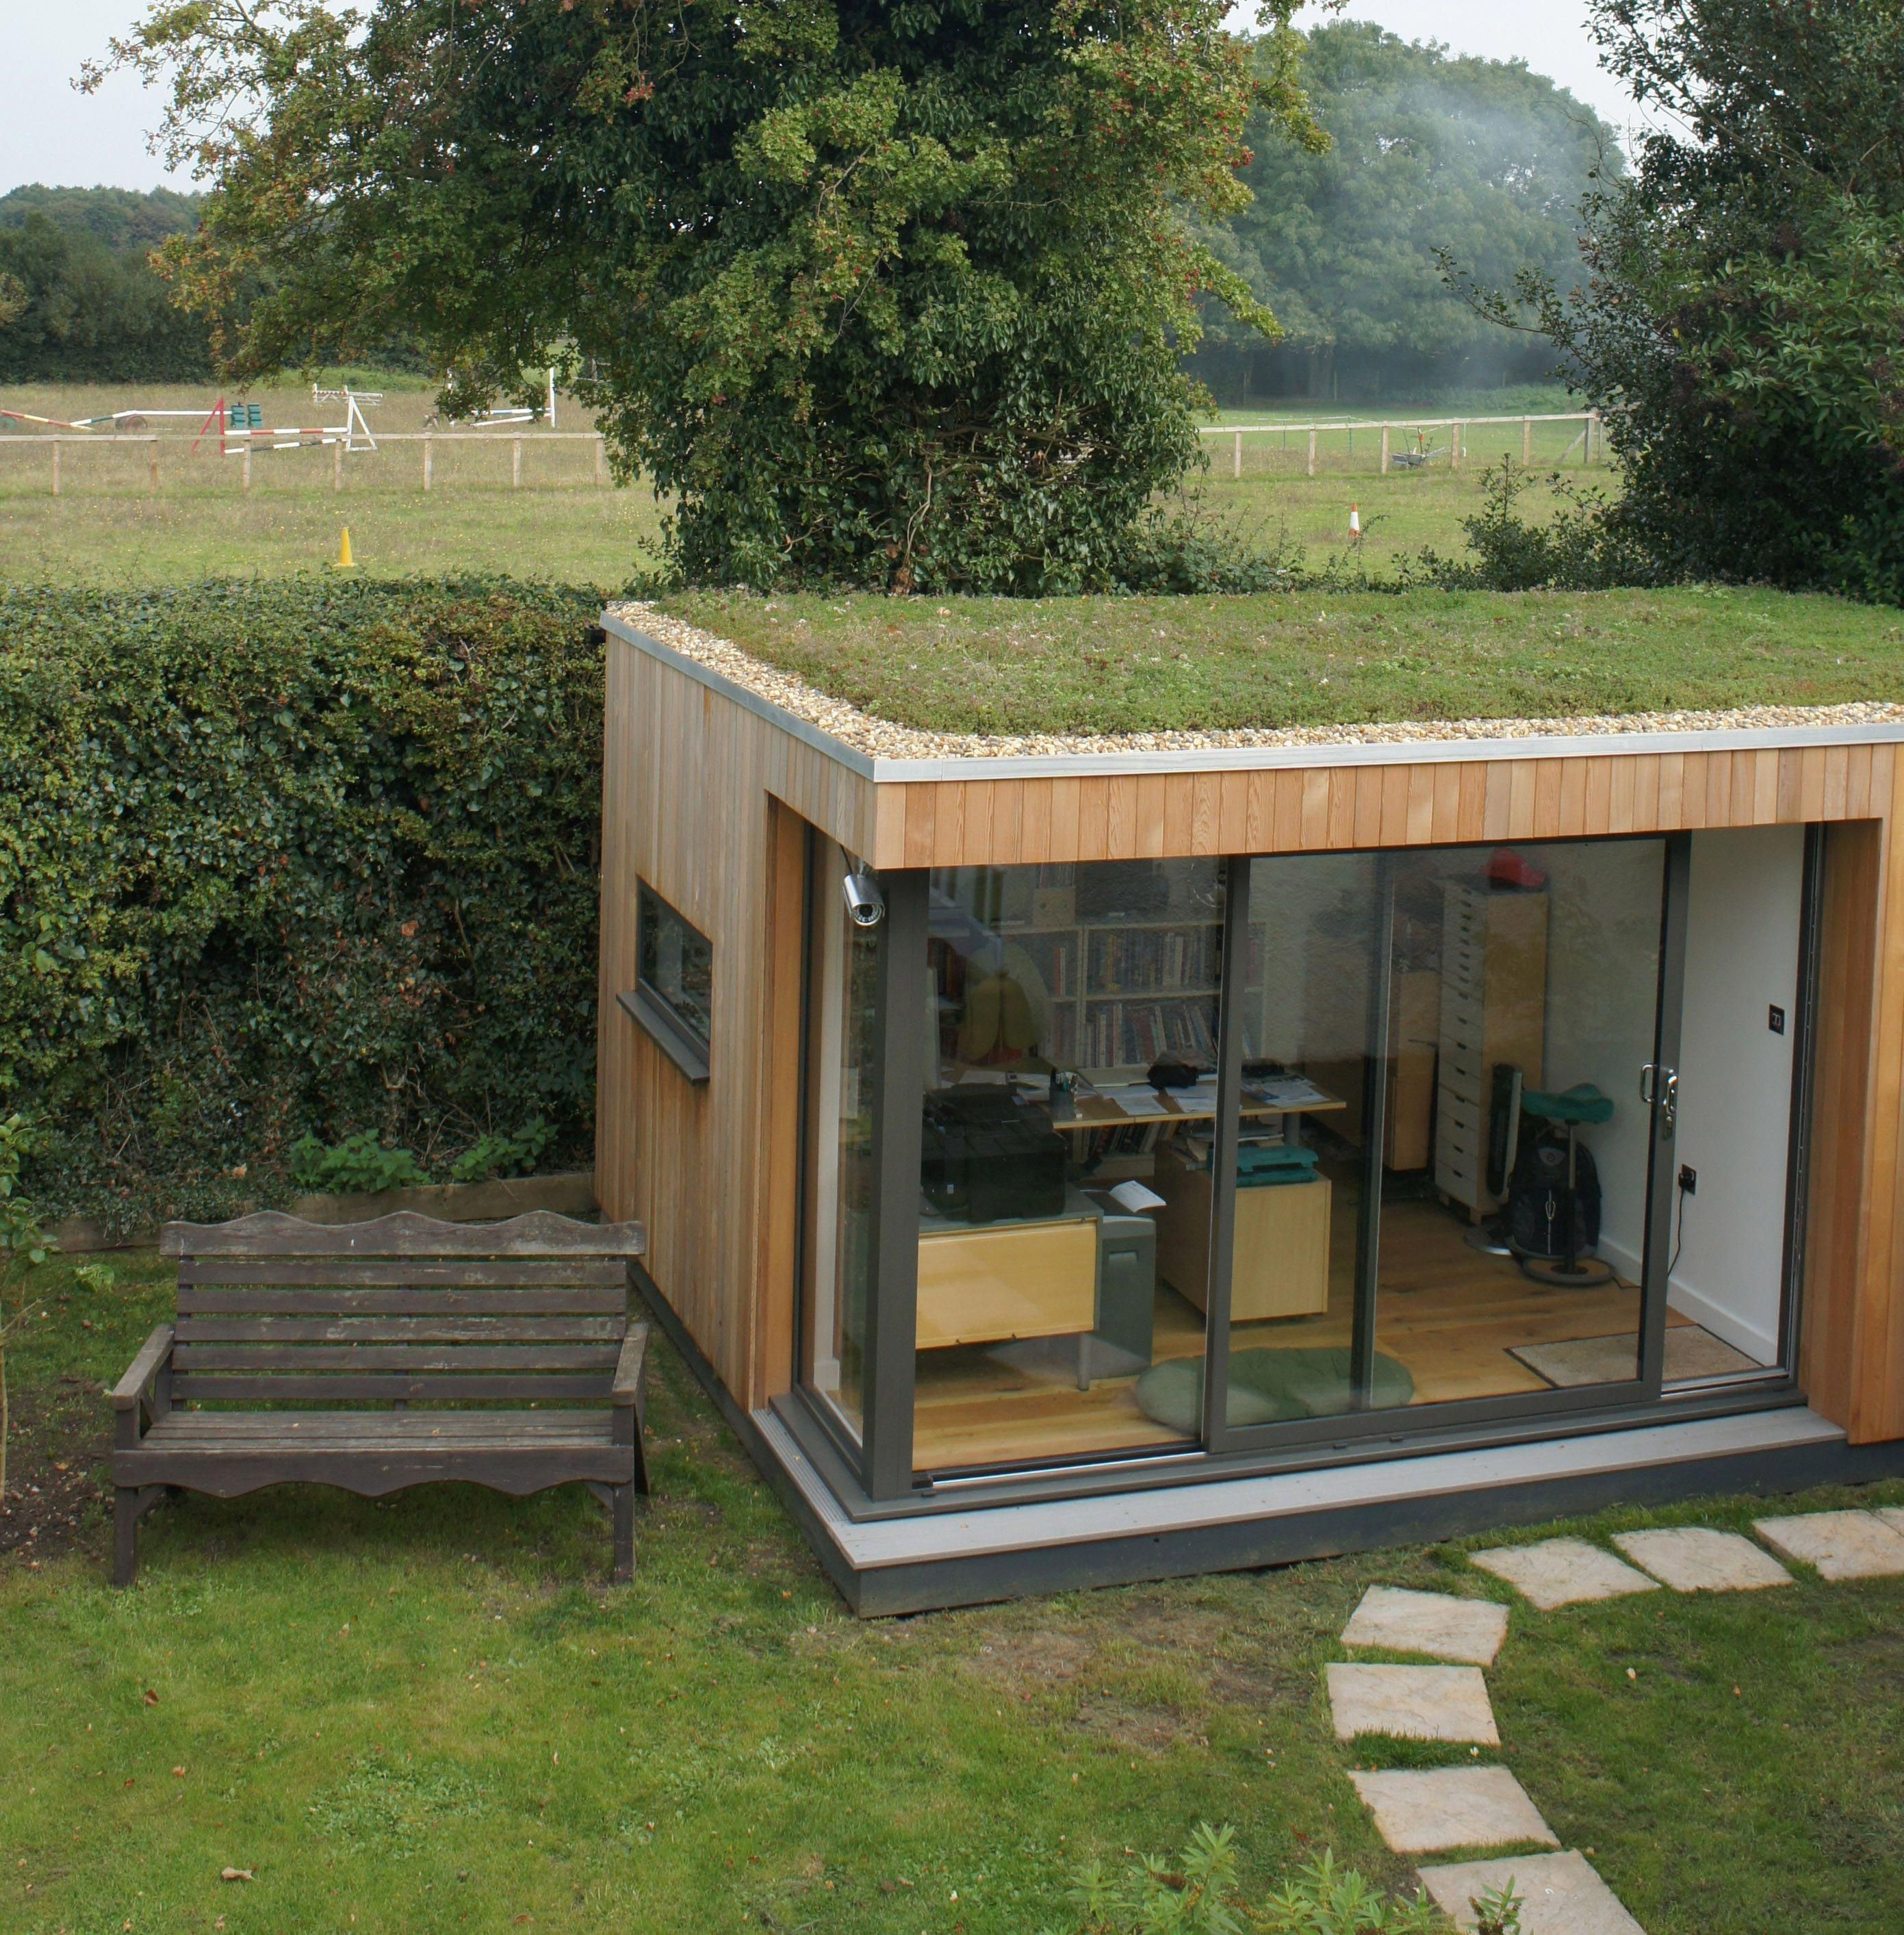 Green Roofs And Great Savings Backyard Office Container House Inside Garden